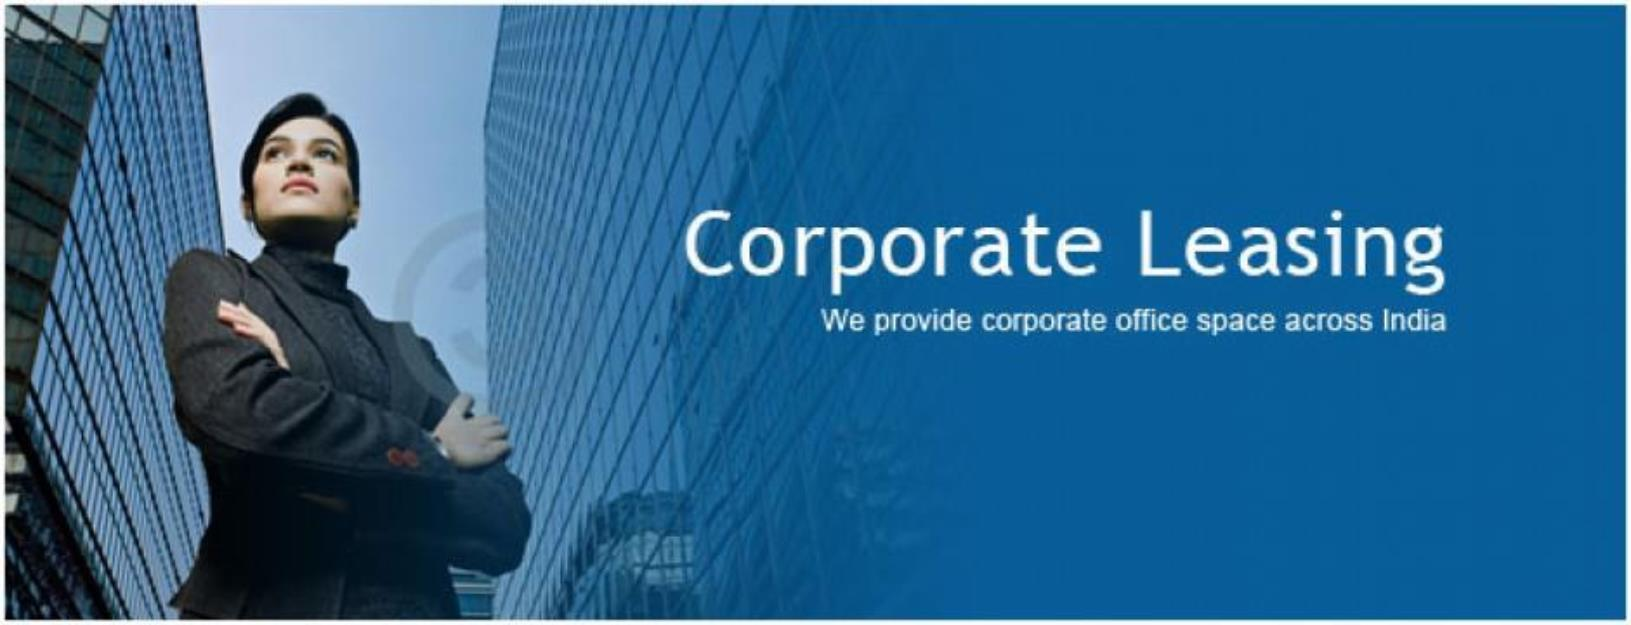 1370442446_516752213_1-Space-available-for-Retail-Stores-Banks-ATMs-Corporate-Offices-Commercial-Leasing-gurgaon